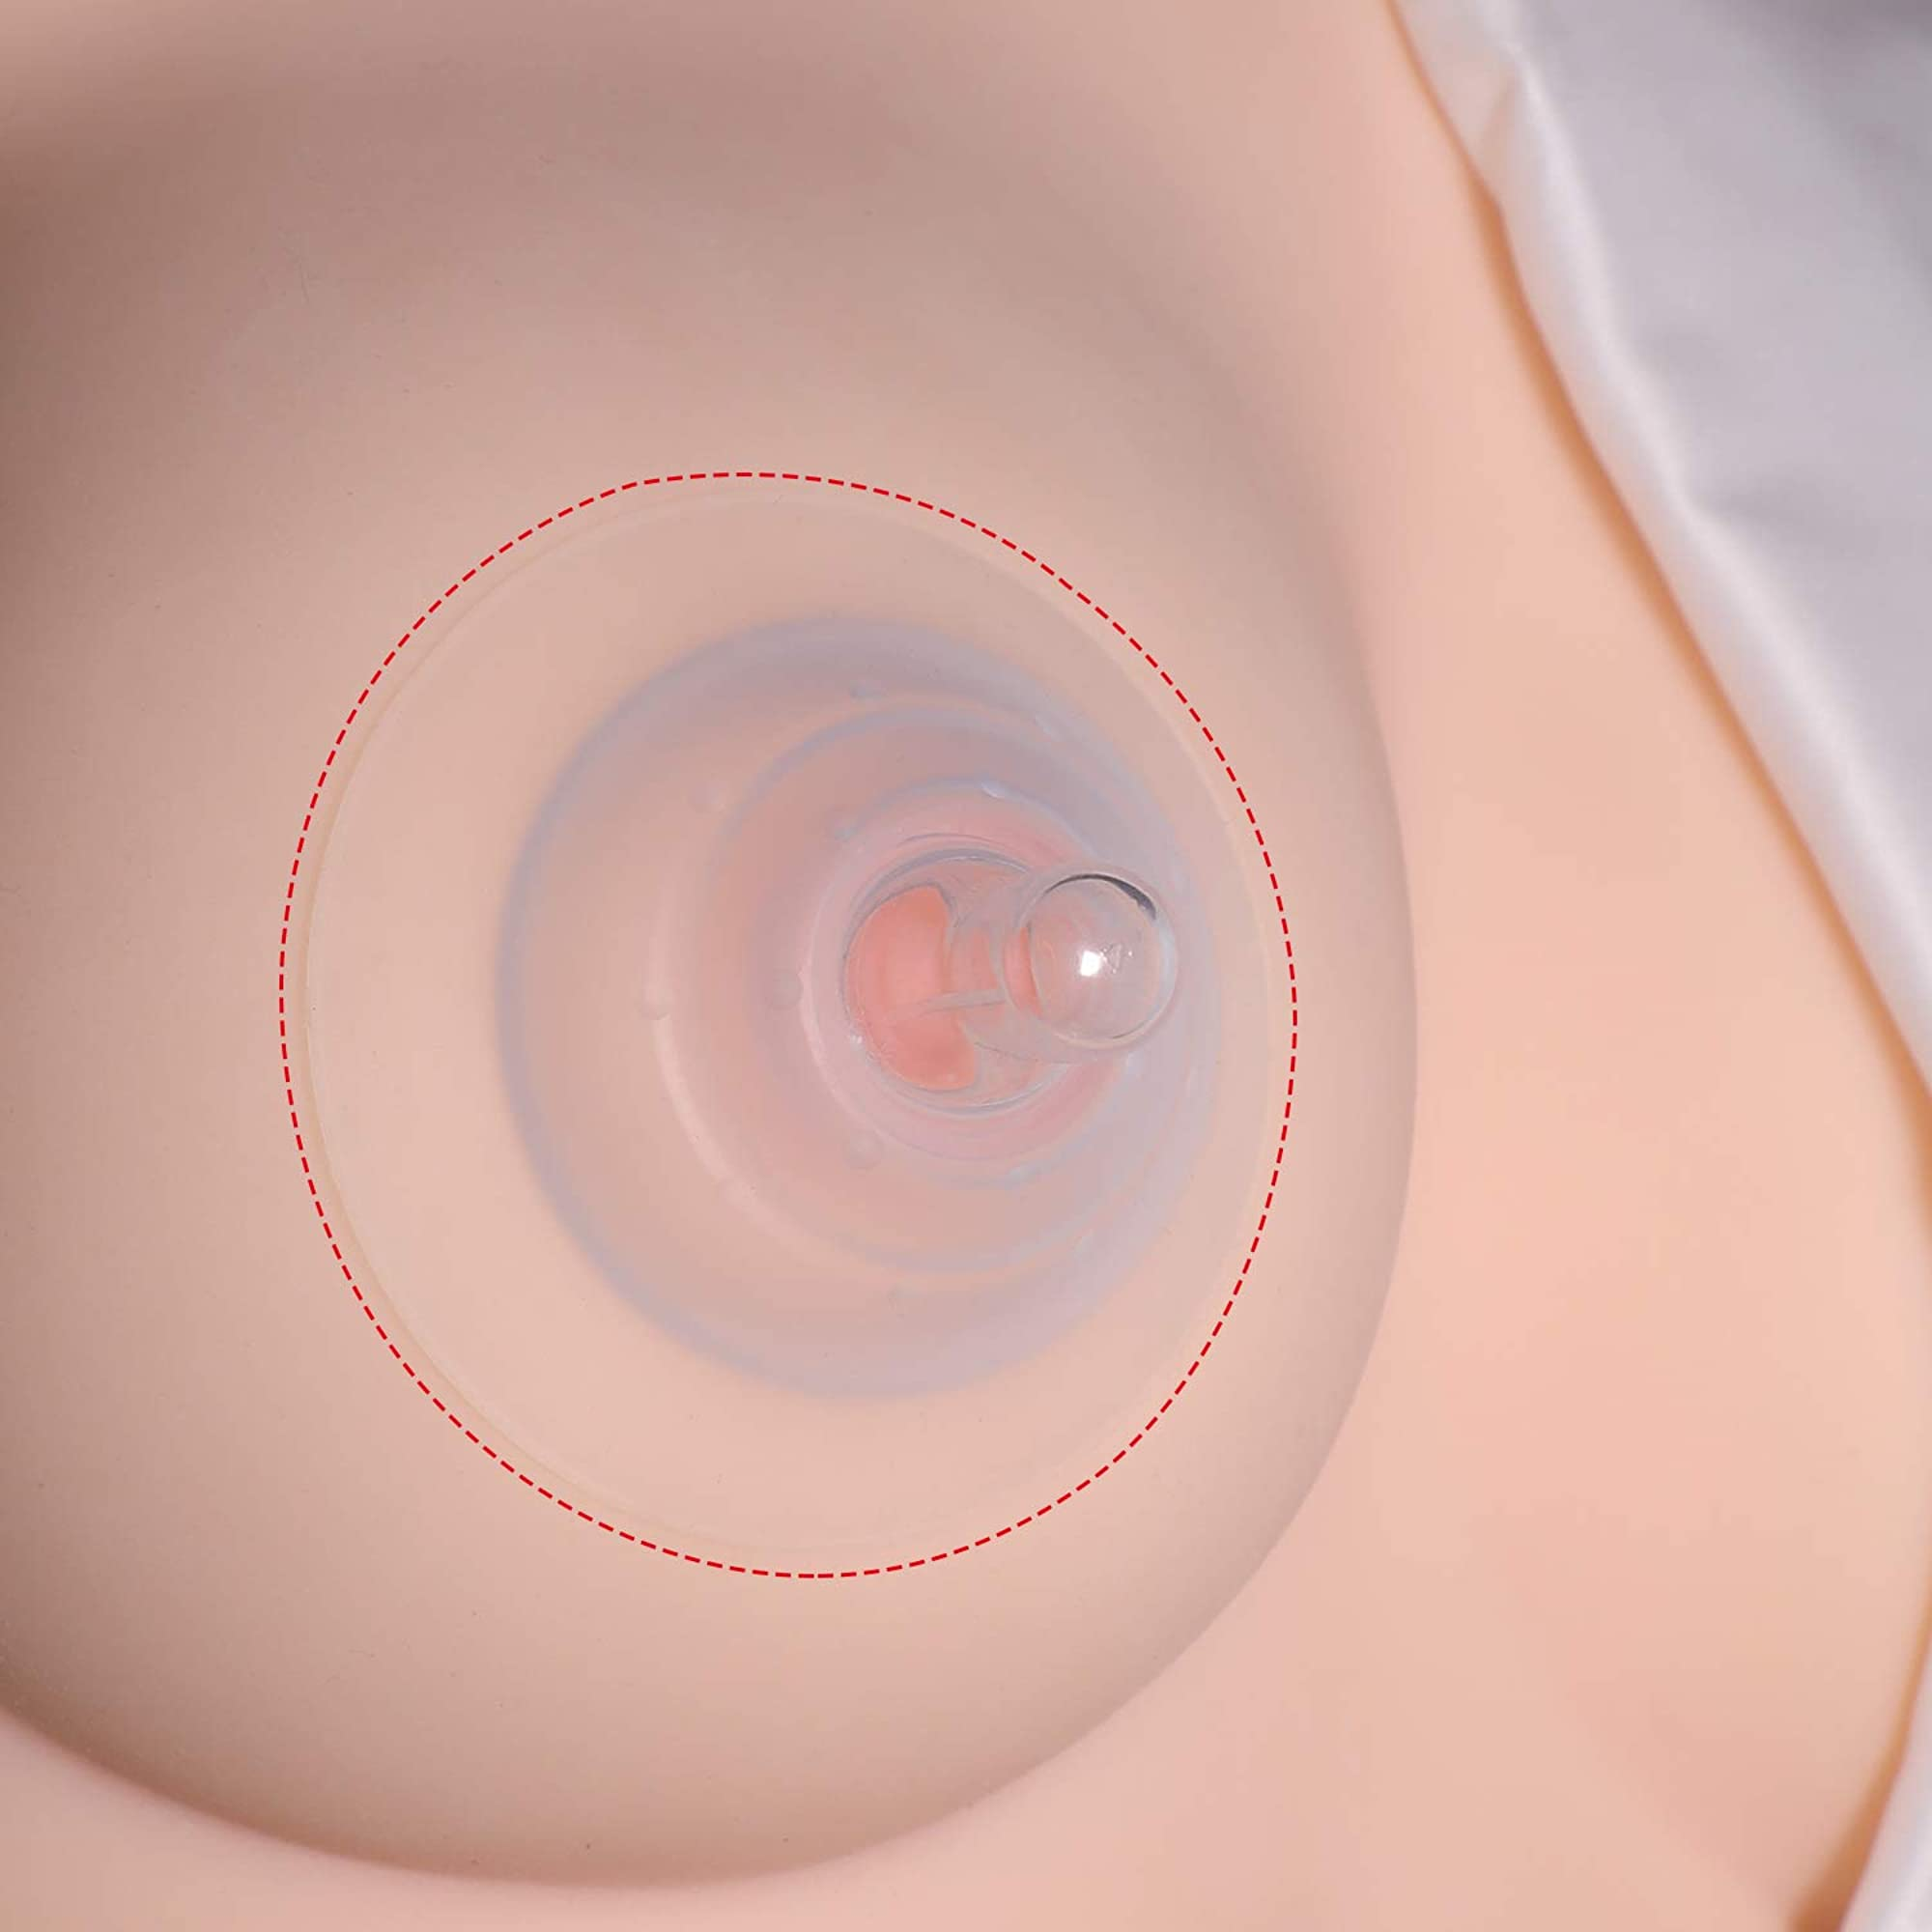 Breastfeeding Shell Nipple Shield